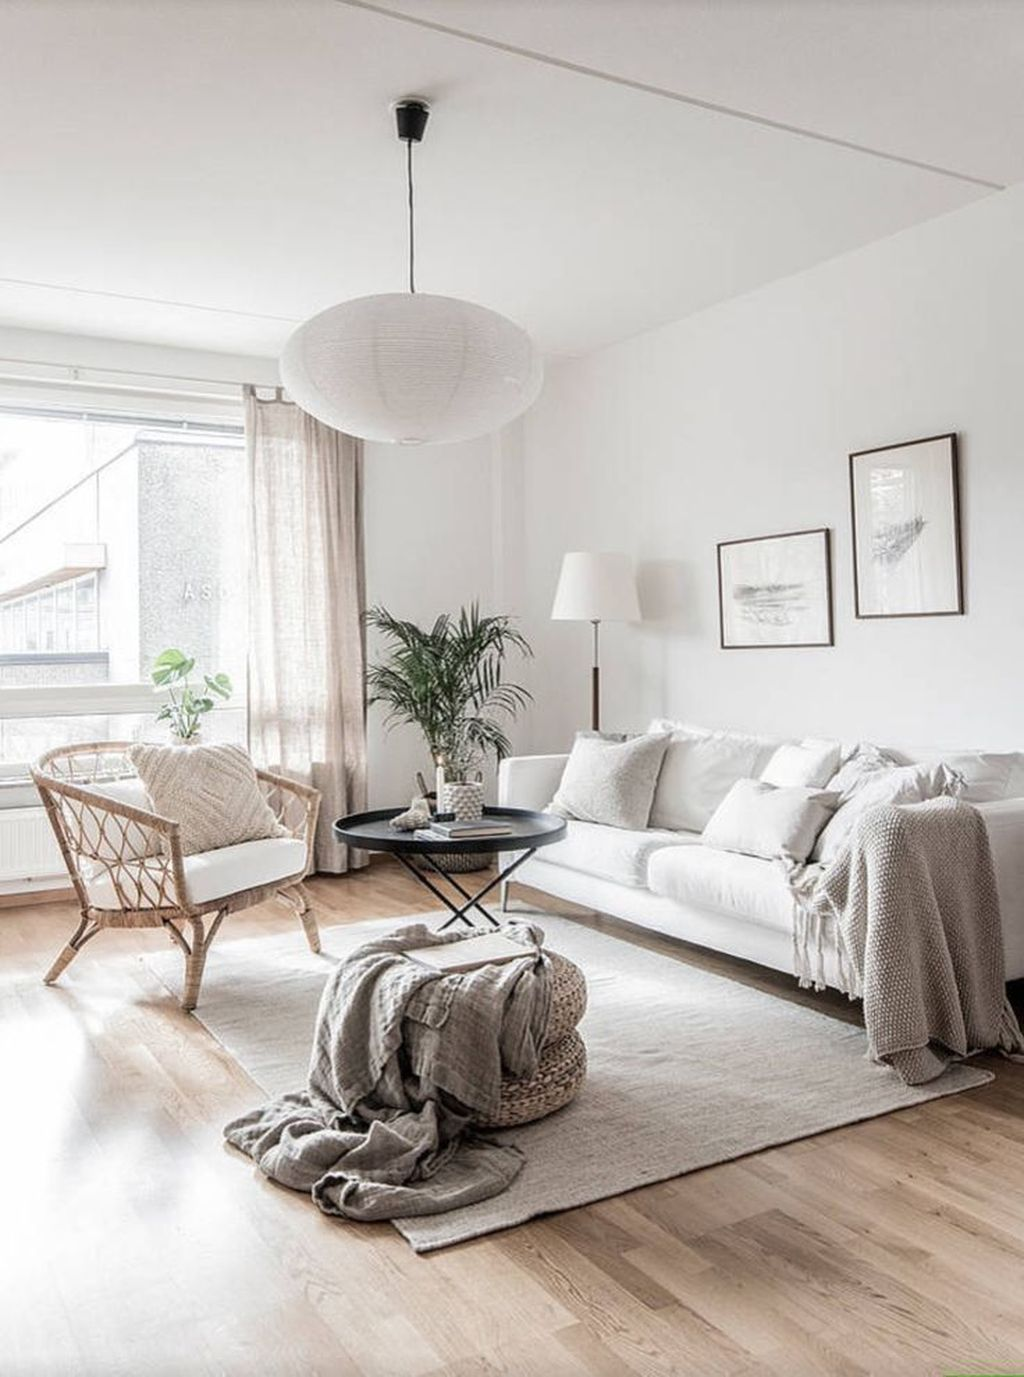 Amazing Scandinavian Living Room Decor Ideas 31